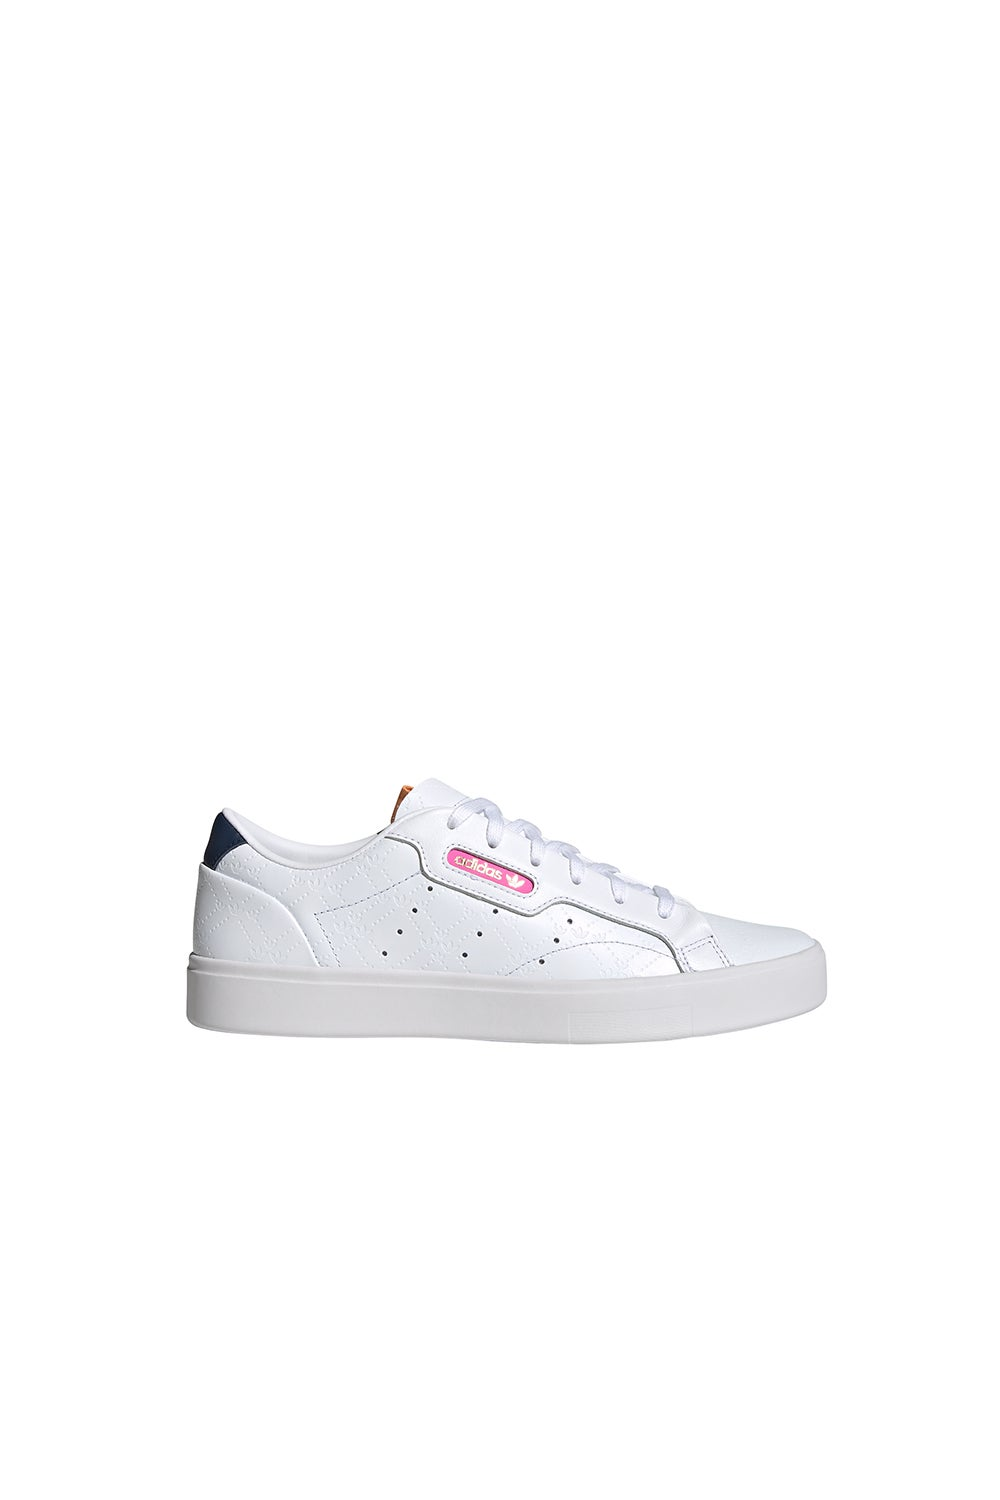 adidas Sleek W Cloud White/Crew Navy/Screaming Pink